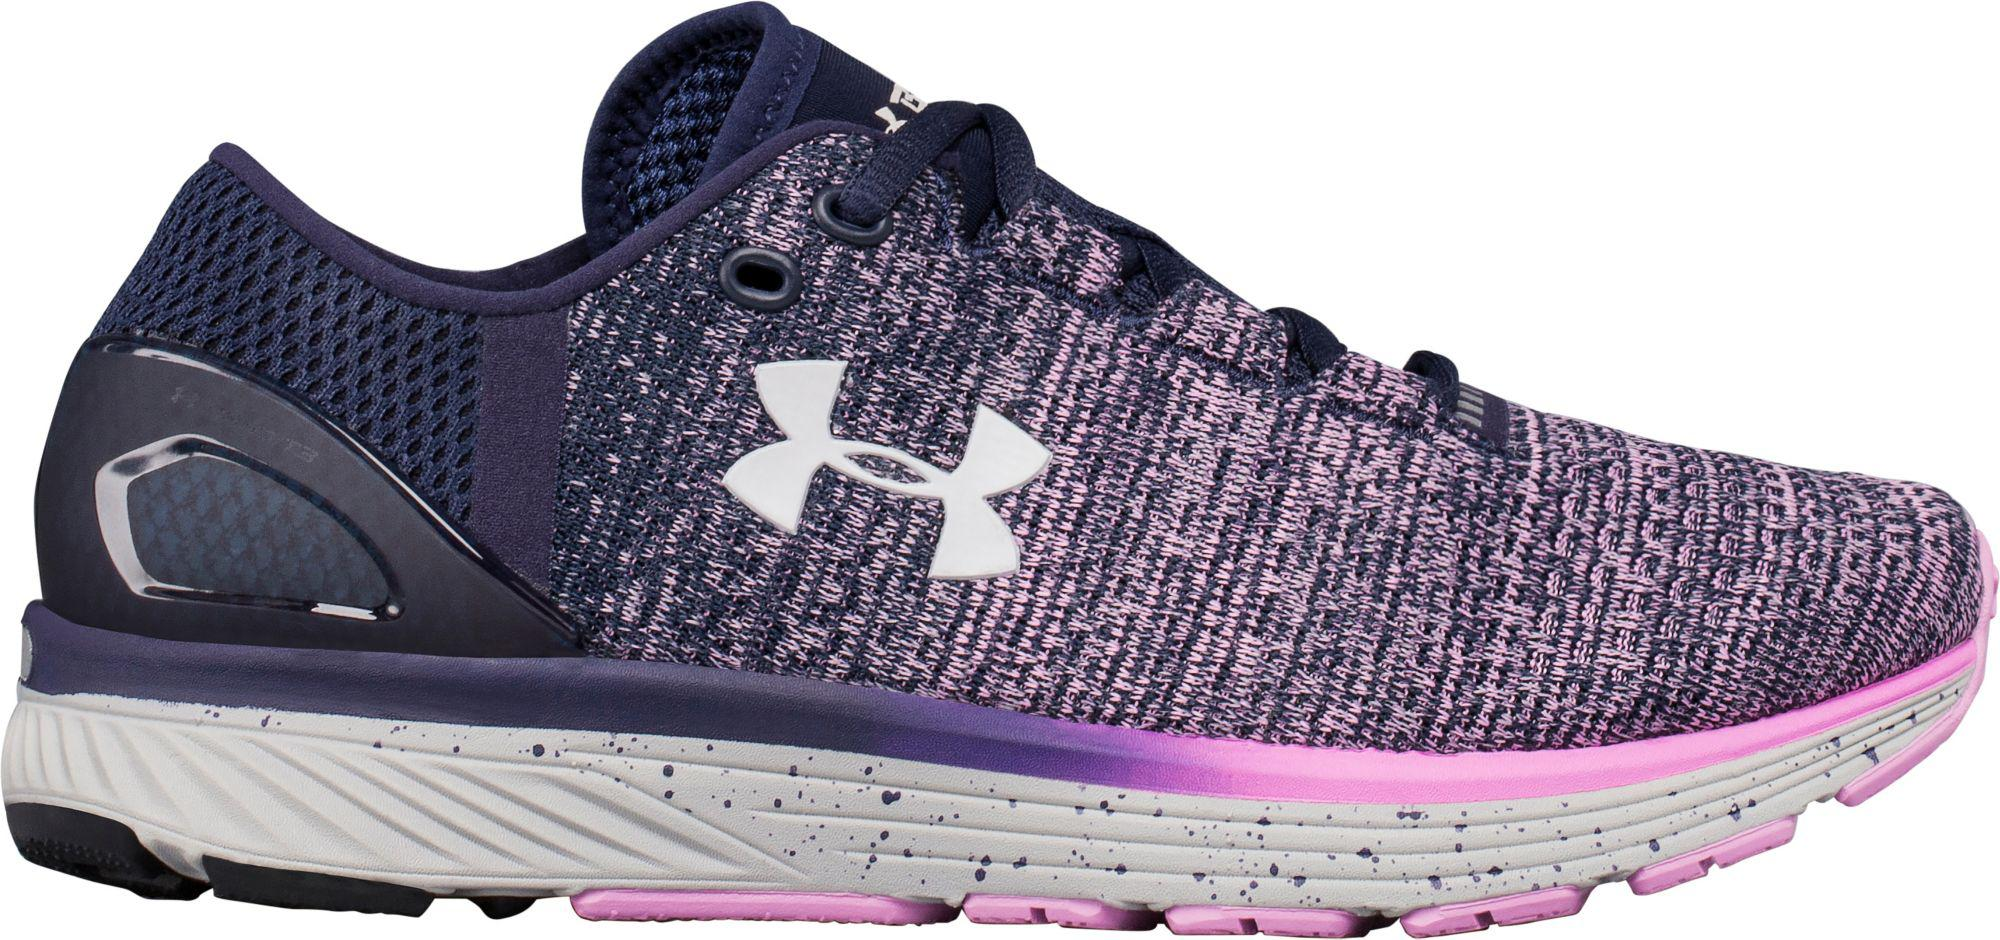 ... Under Armour - Purple Charged Bandit 3 Running Shoes - Lyst ... 5b46f2d74